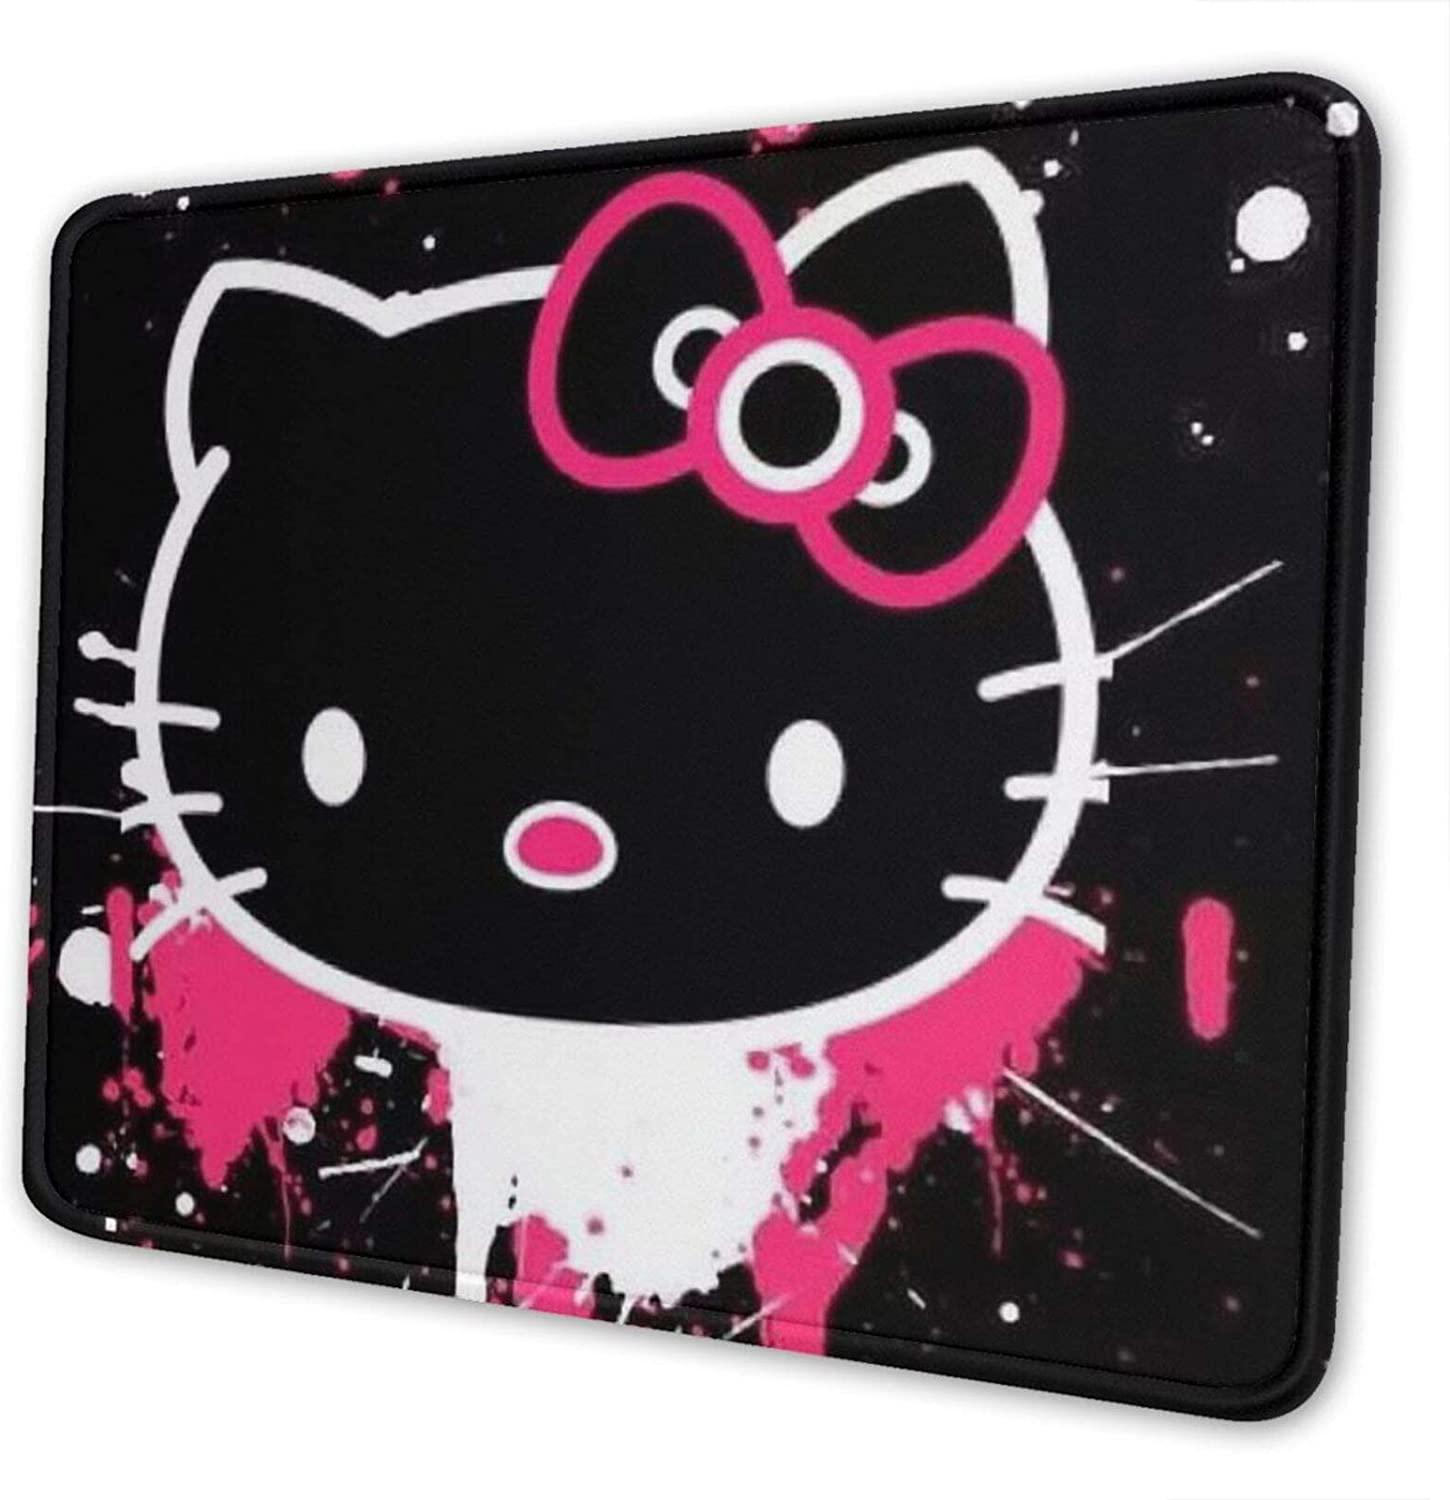 Hello Kitty Mouse Pad, Used for Office and Home Games, Washable Textured Mouse Pad7 X 8.6 in